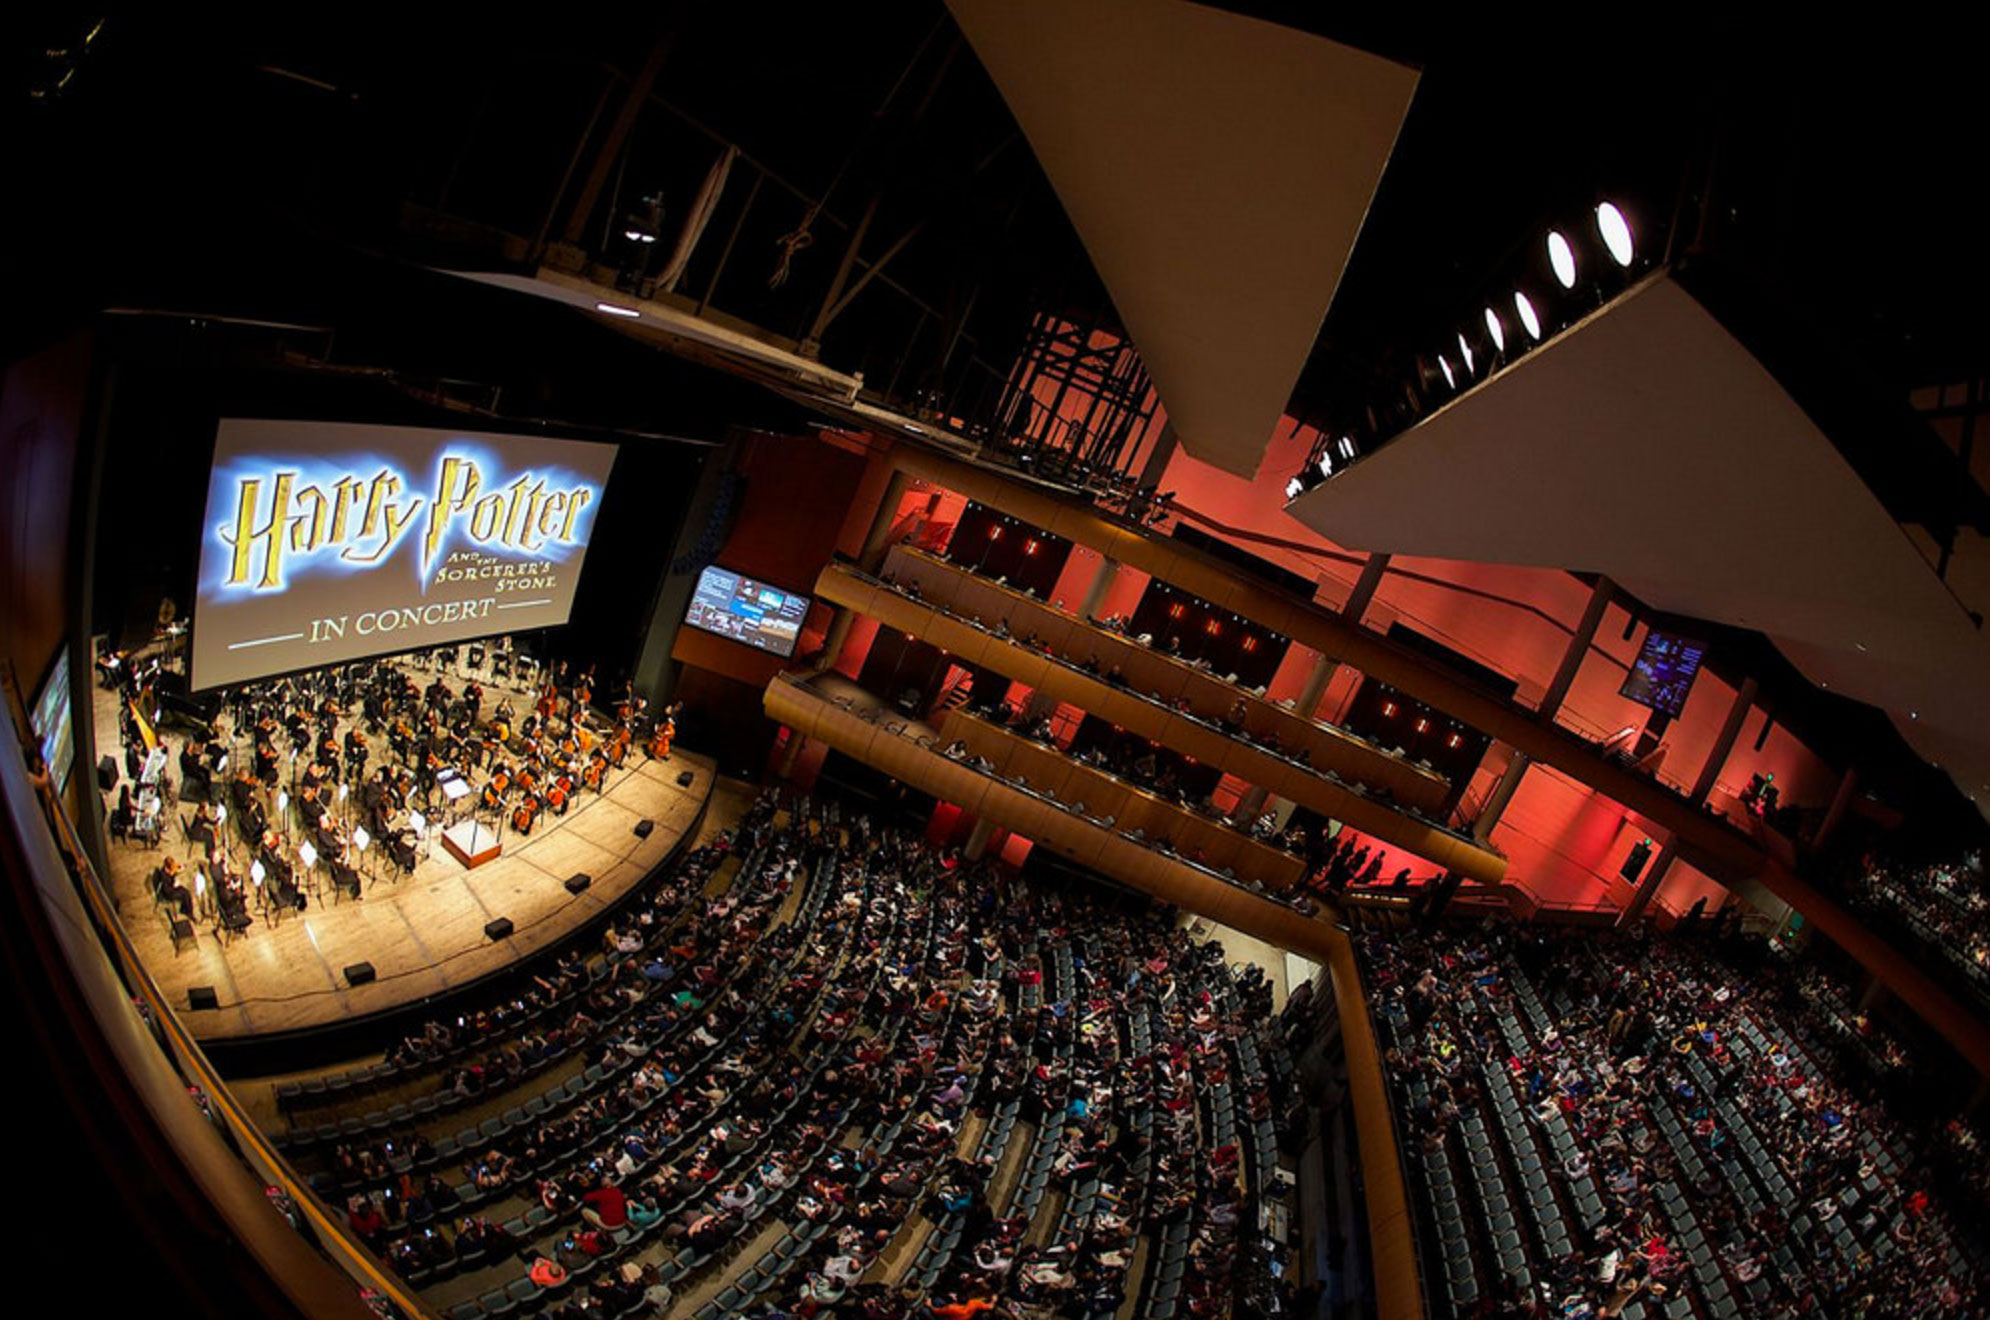 Grand Rapids Symphony presents Harry Potter and The Chamber of Secrets in concert